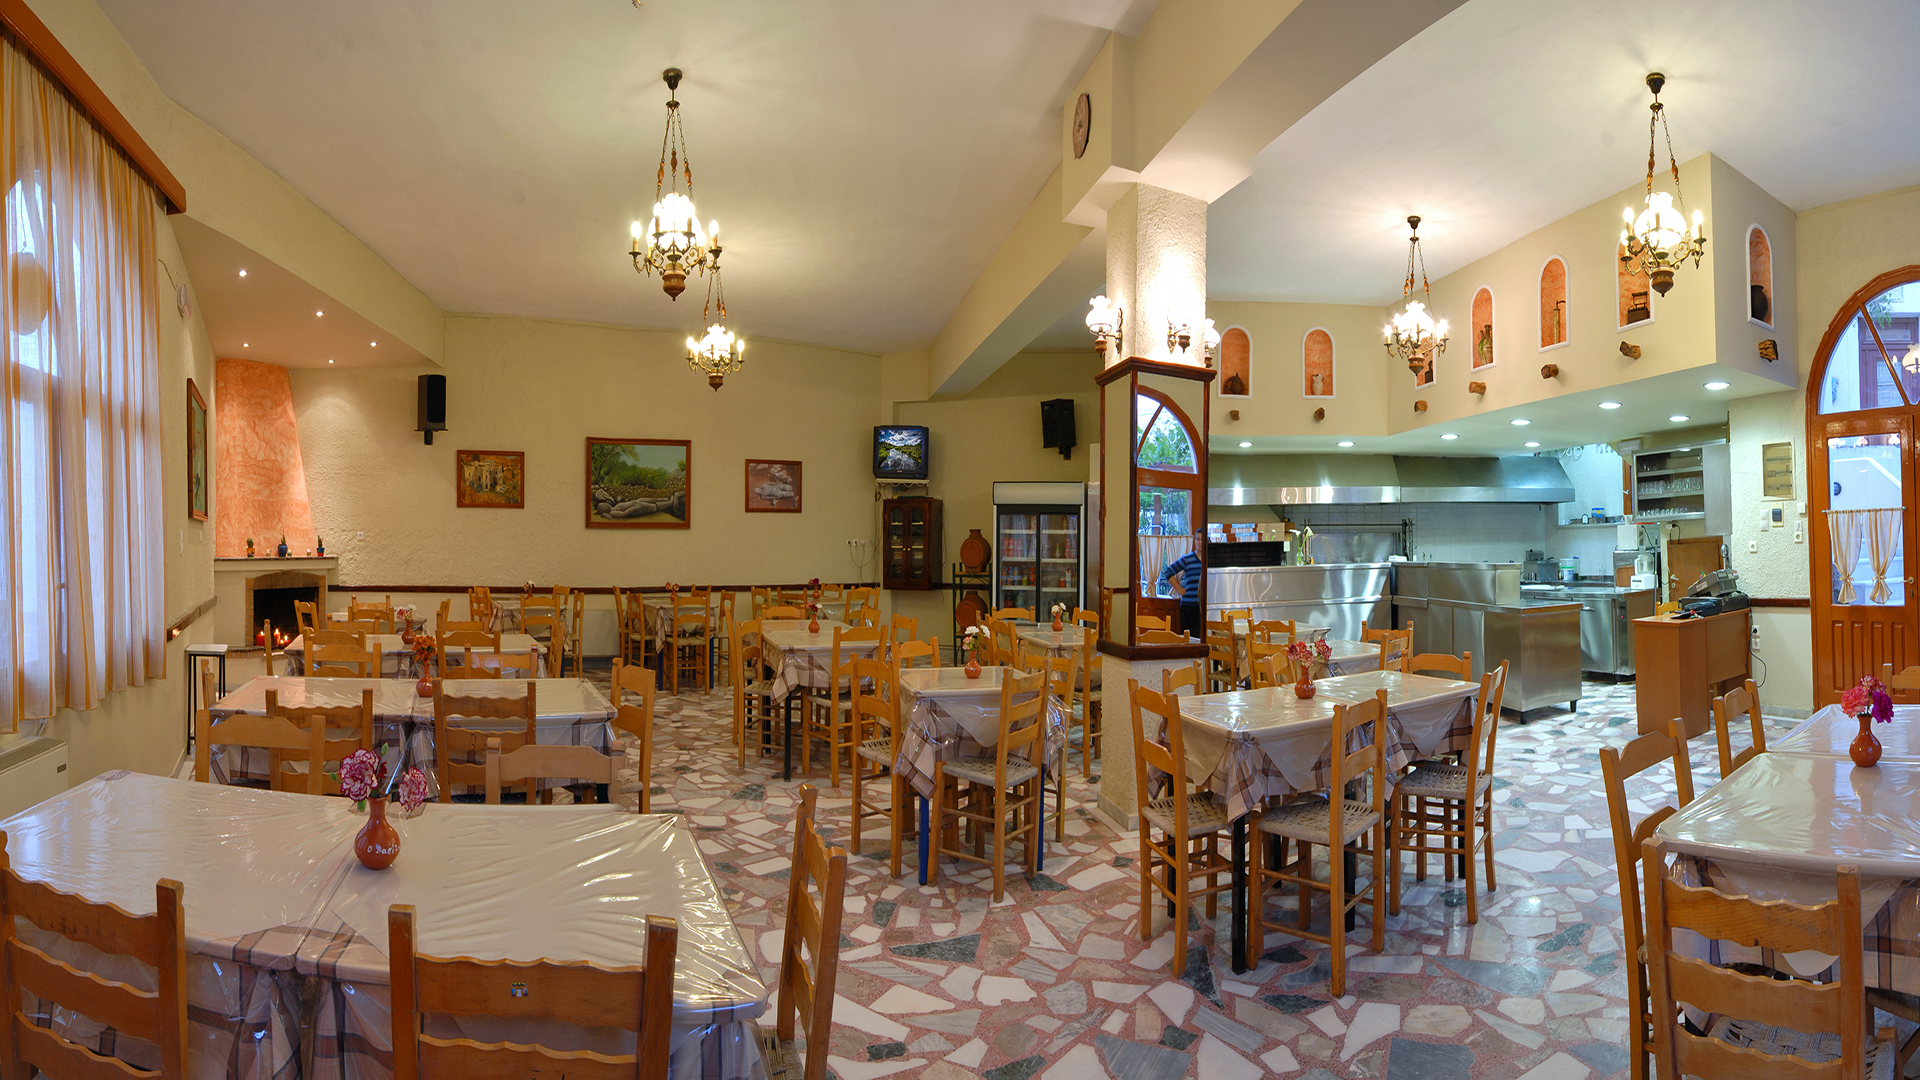 <h2>TRADITIONAL TAVERN  O VASILIS</h2><p>MELANES NAXOS</p><div class='bgslideshowmore'><a href='http://www.tavernanaxos.4ty.gr/more.php?l=en' >More...</a></div>